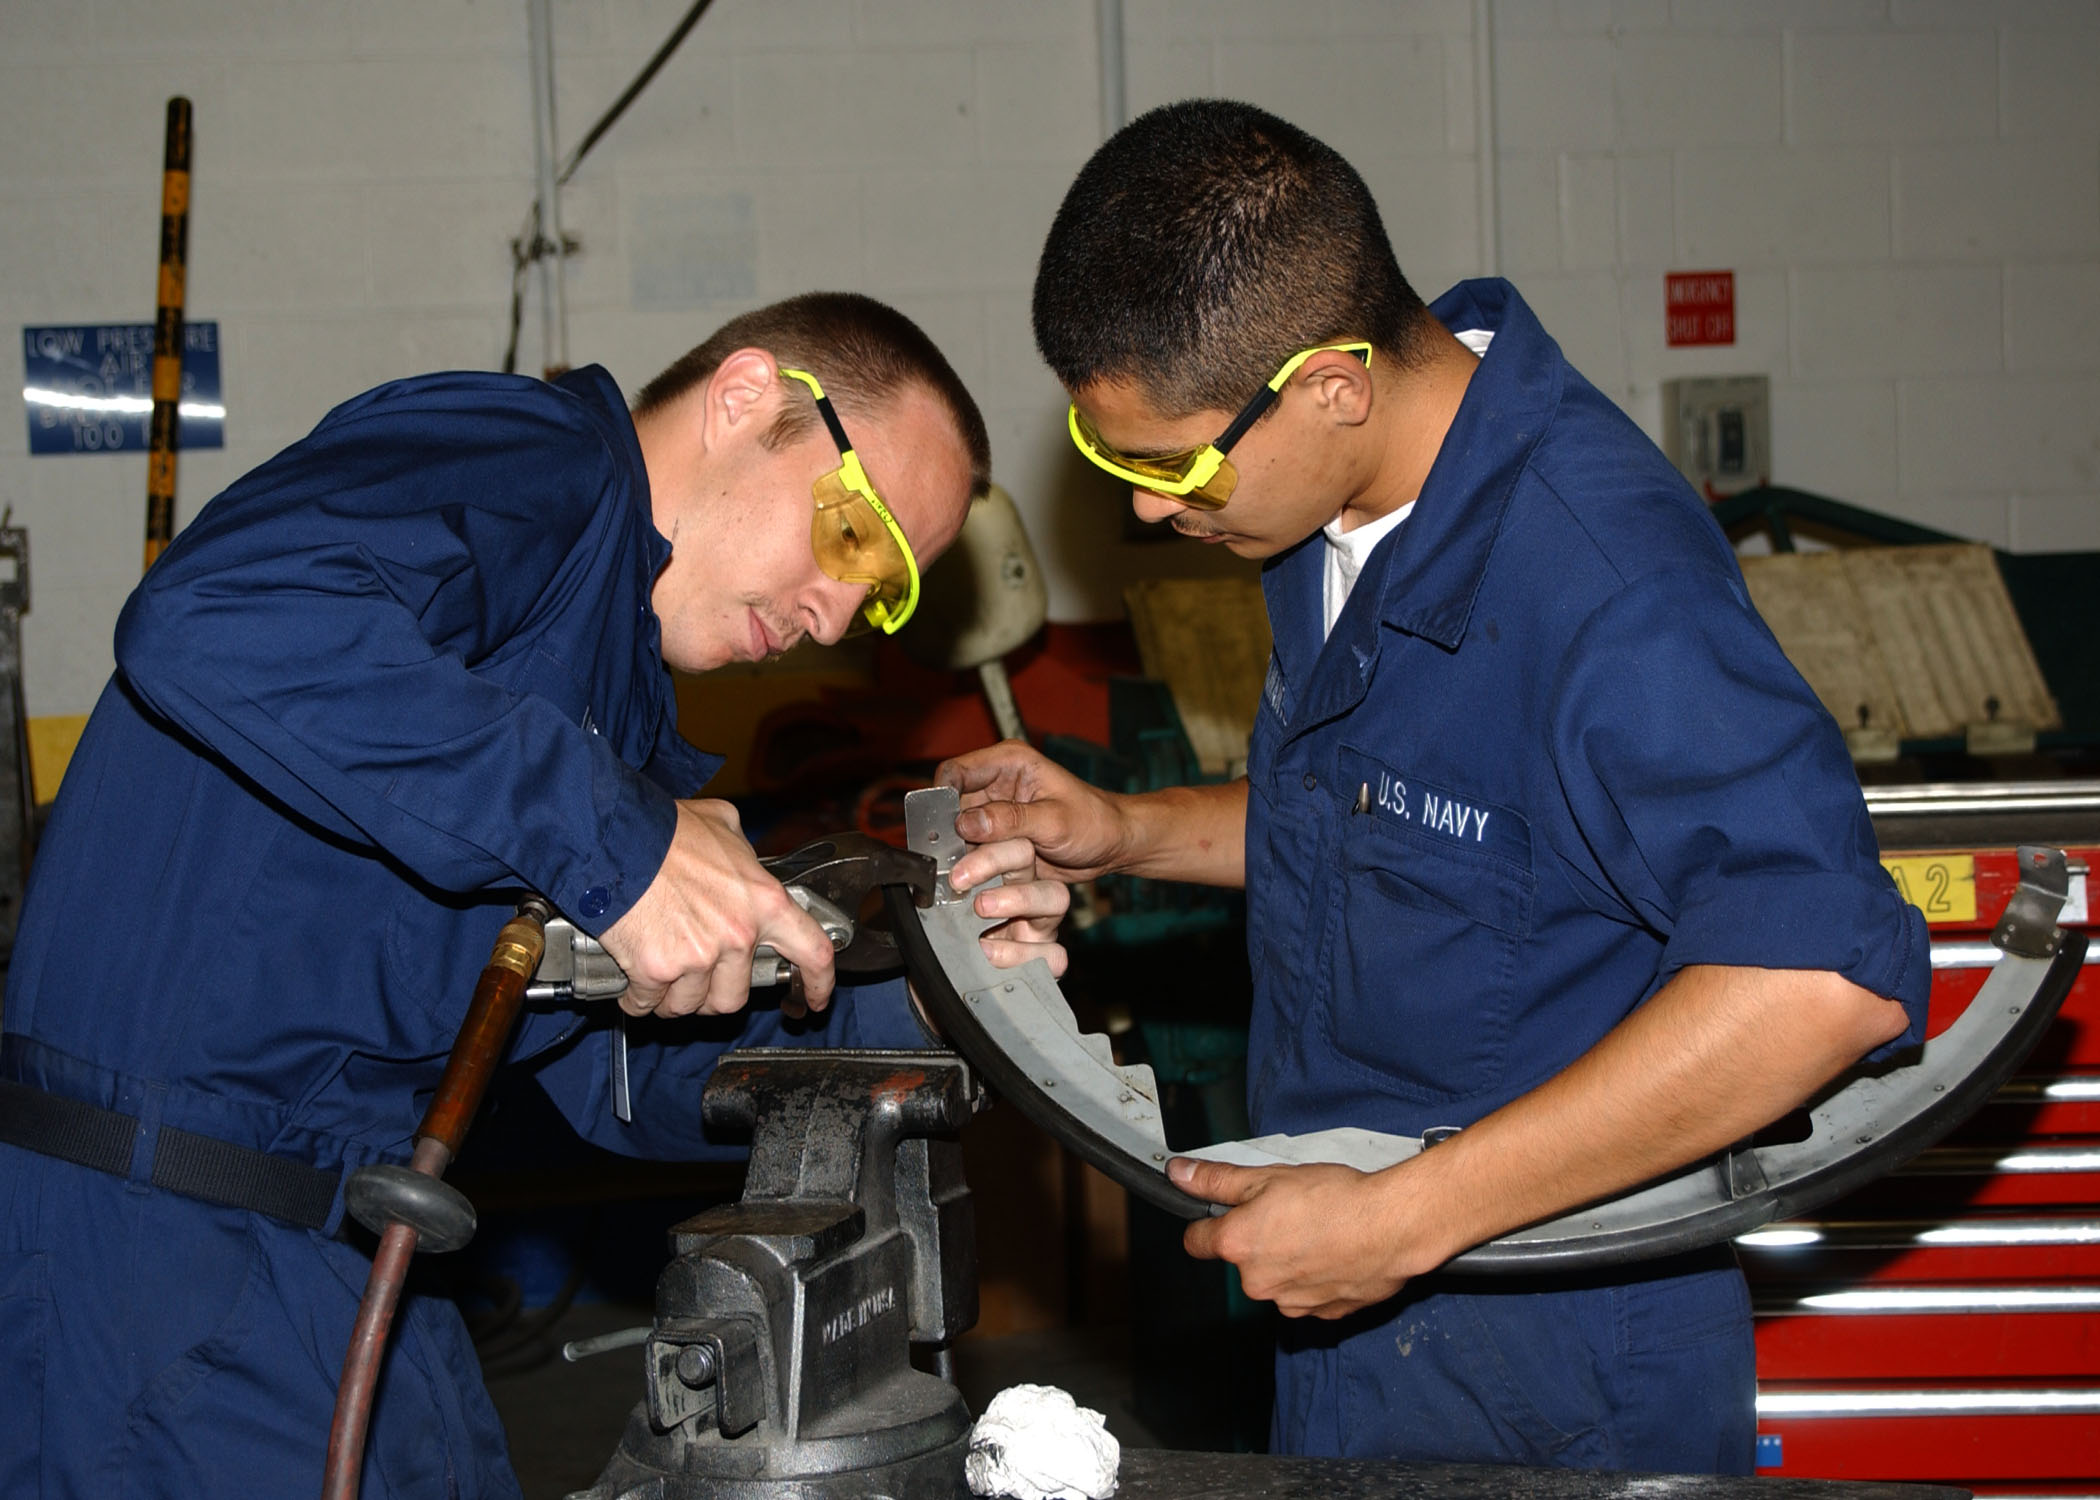 US Navy 030618-N-3970R-001 Aviation Structural Mechanic 2nd Class Jason Lively and Aviation Mechanic Airman Rafael Bustamente work together to rivet an air baffle